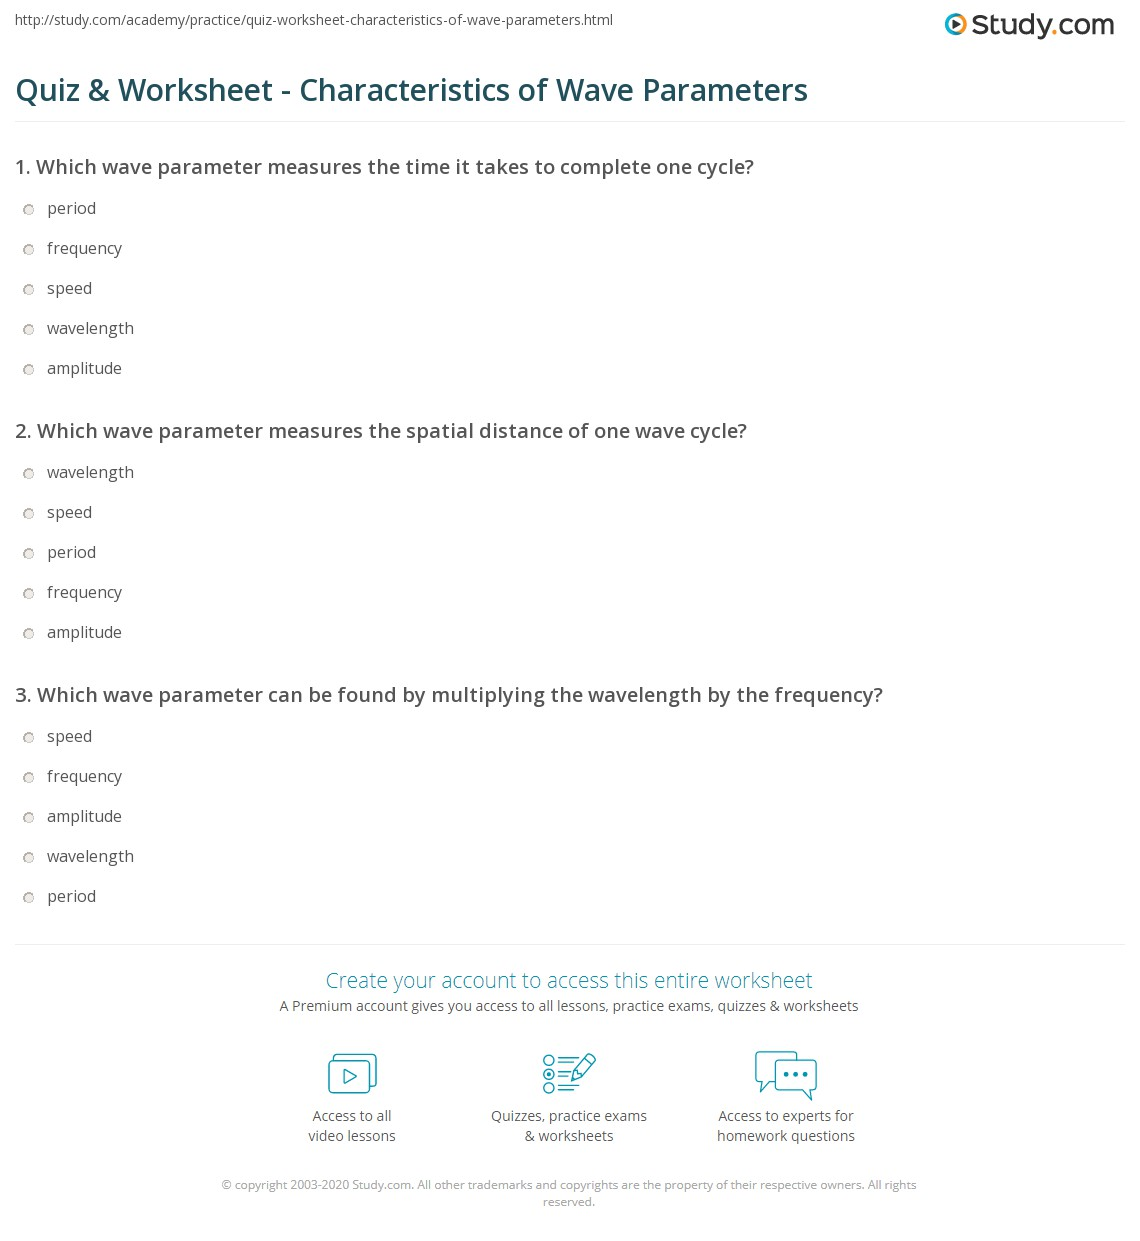 worksheet Wave Equation Worksheet quiz worksheet characteristics of wave parameters study com print wavelength amplitude period frequency speed worksheet